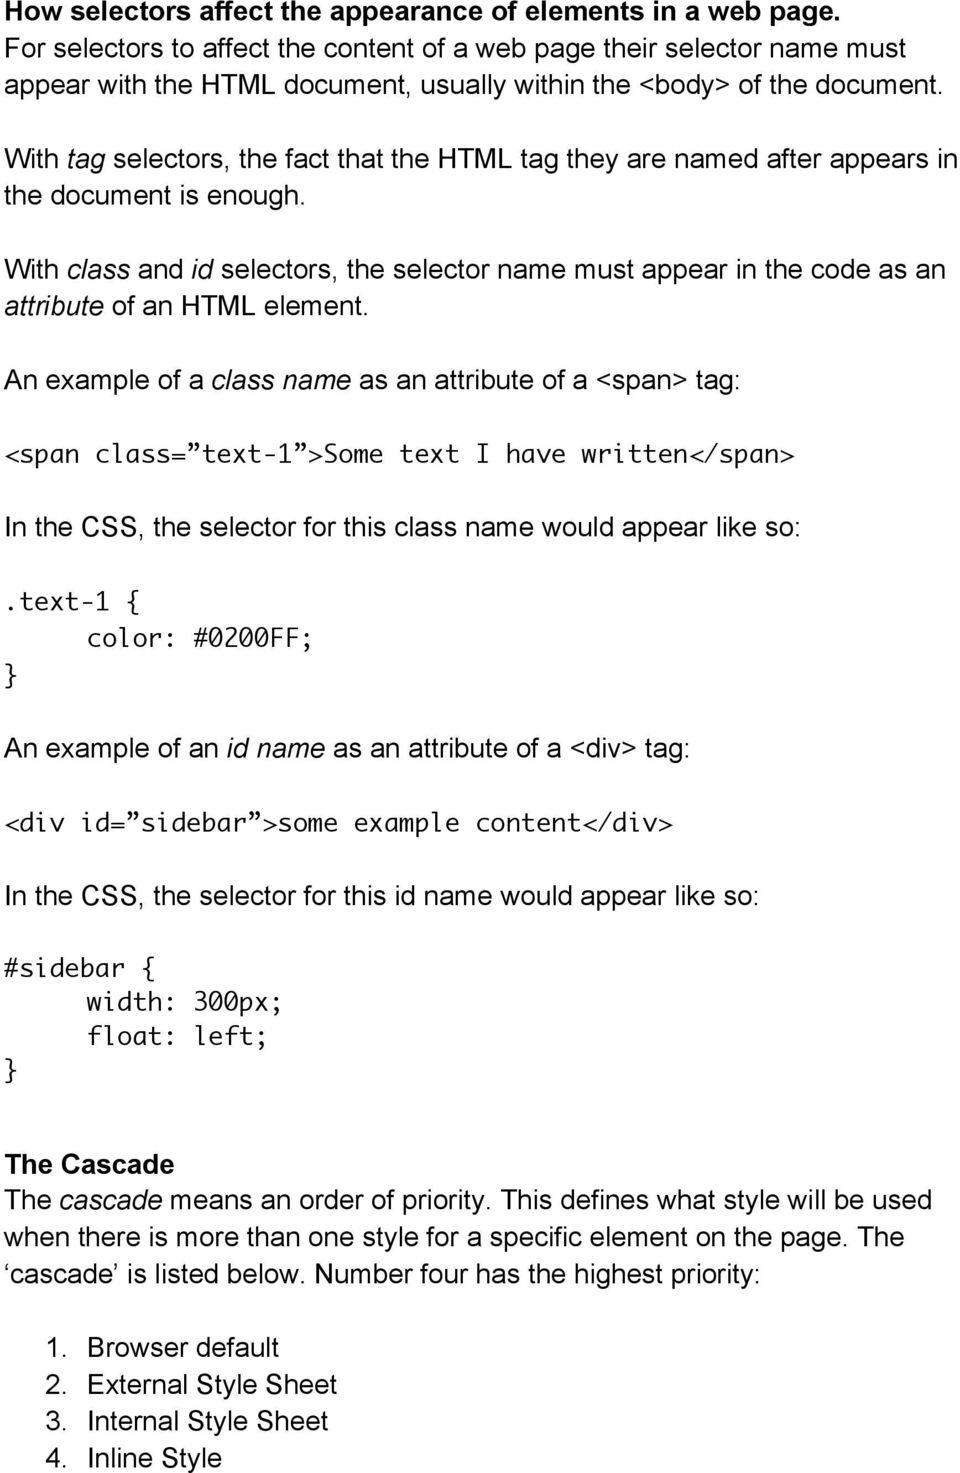 With tag selectors, the fact that the HTML tag they are named after appears in the document is enough.